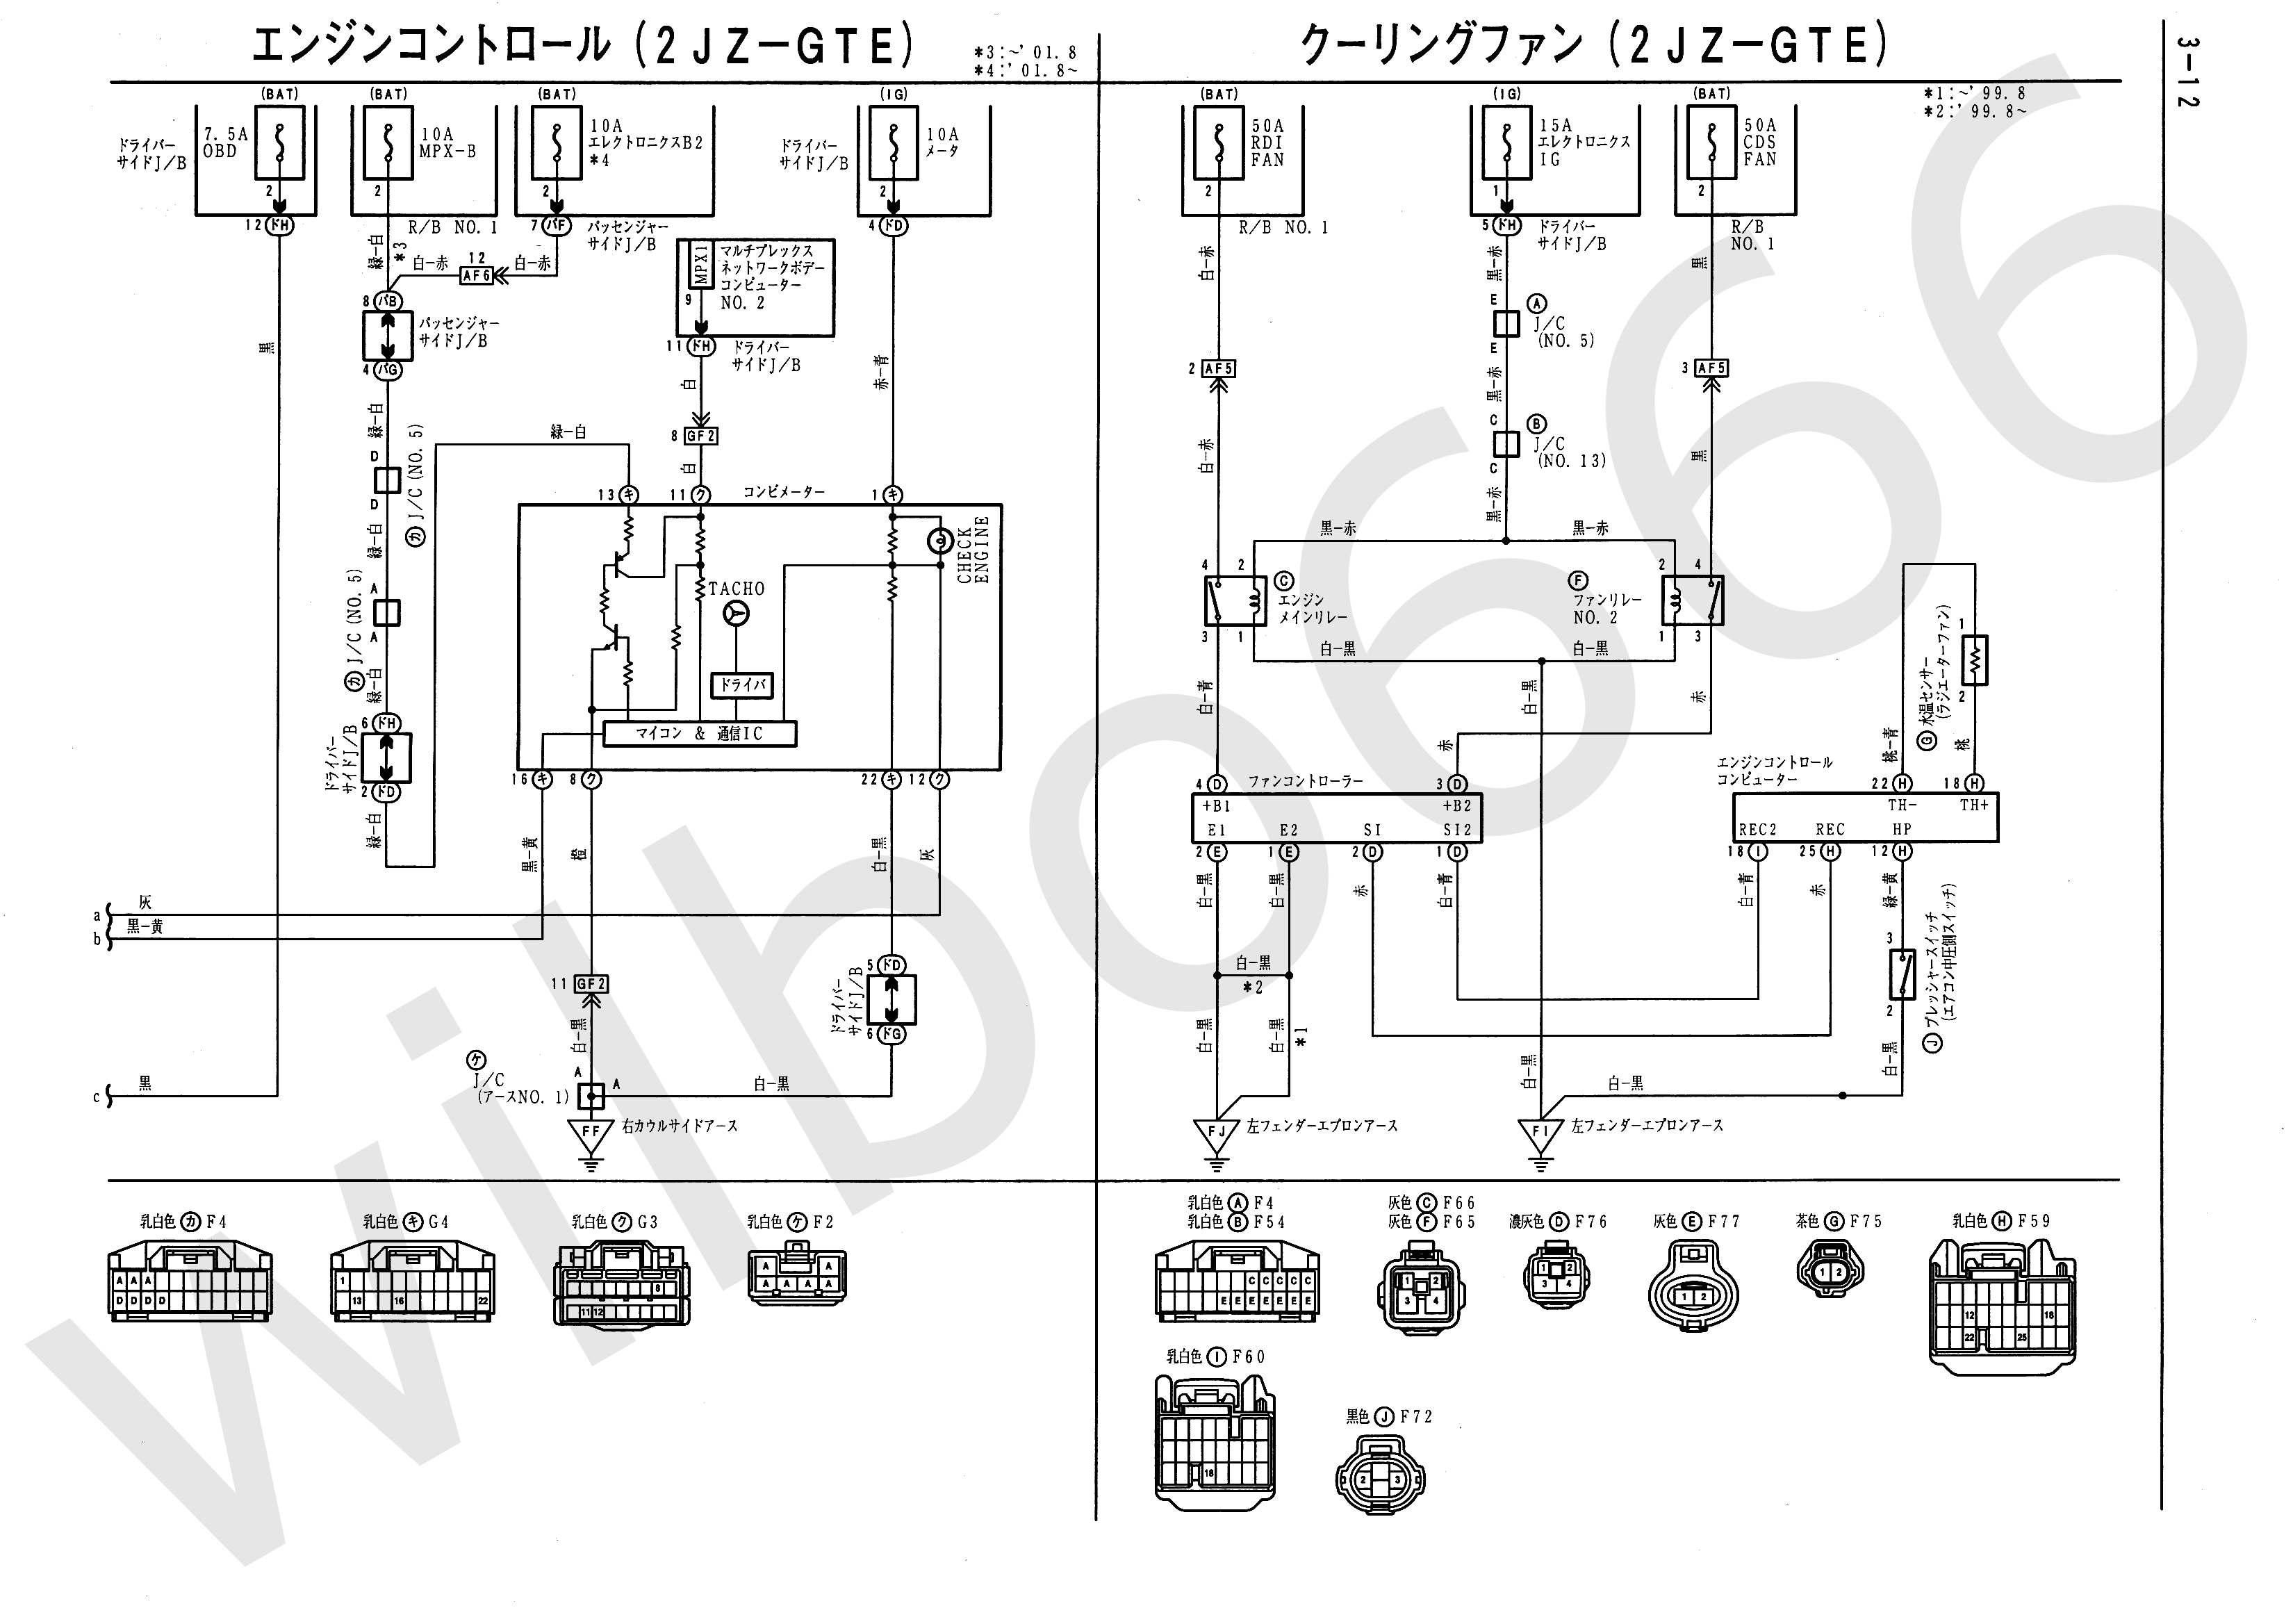 Wiring Diagram Toyota Crown 2jzge